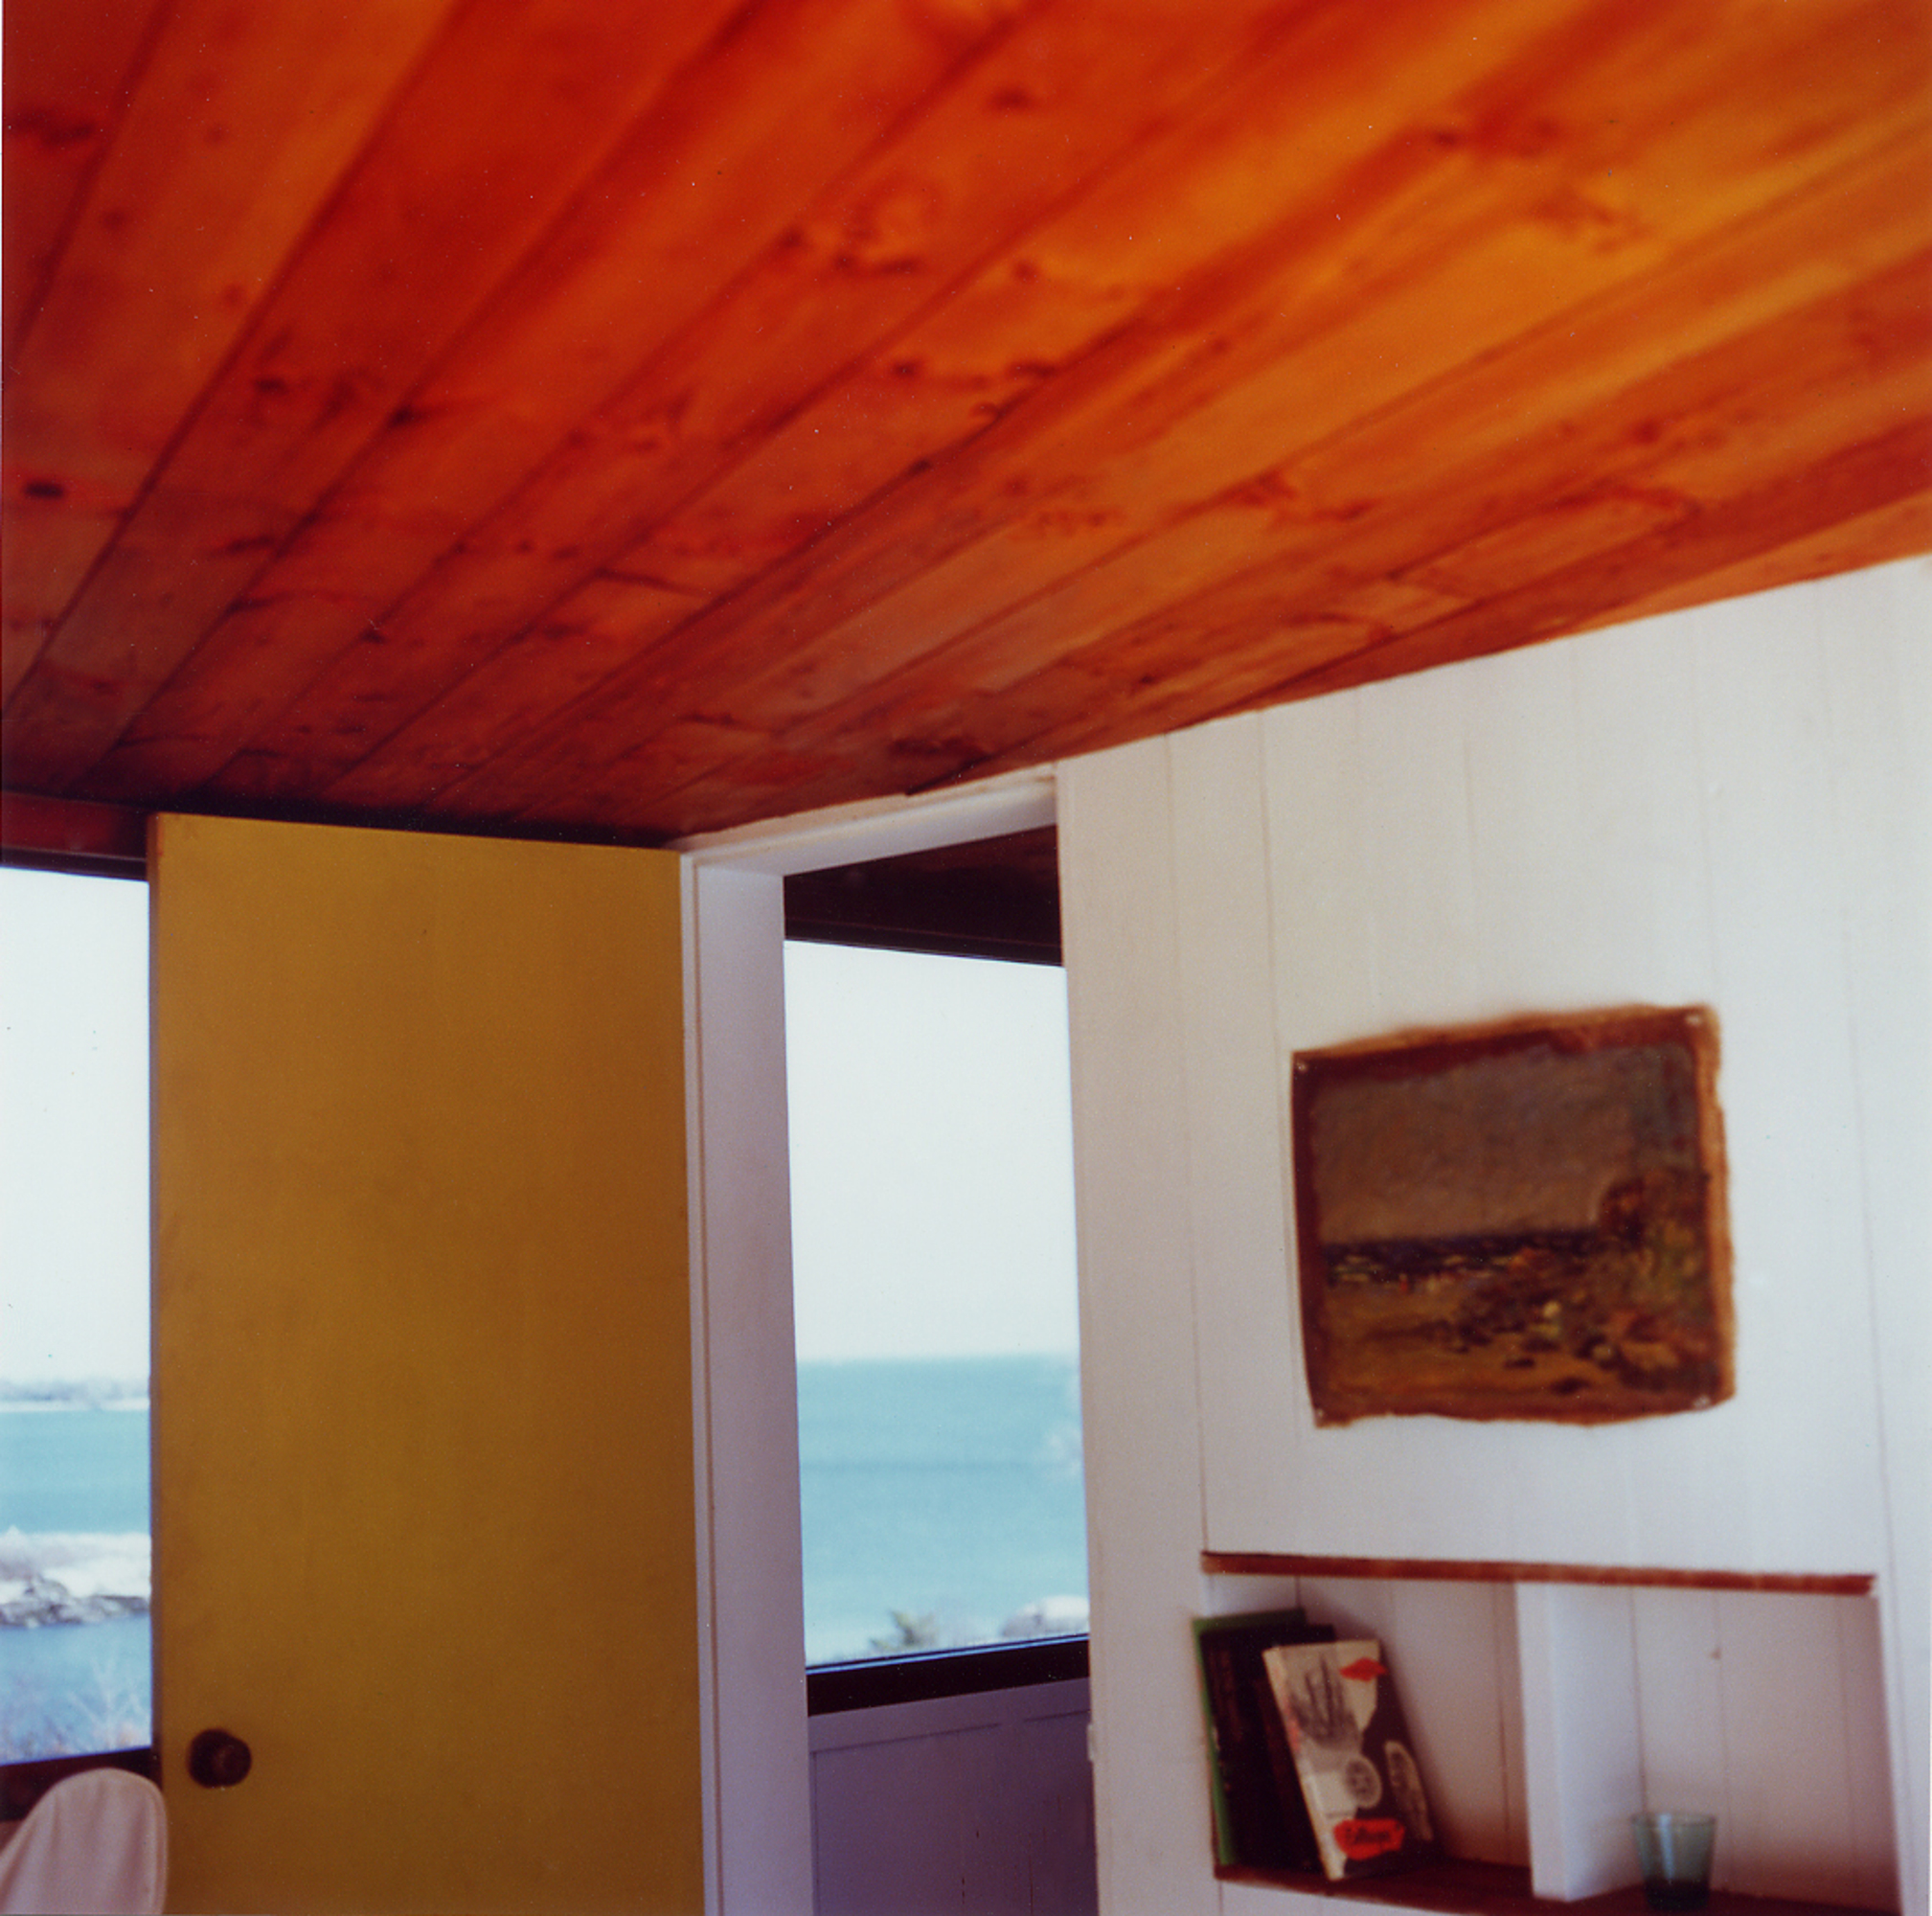 Guest House Left Room, 2003